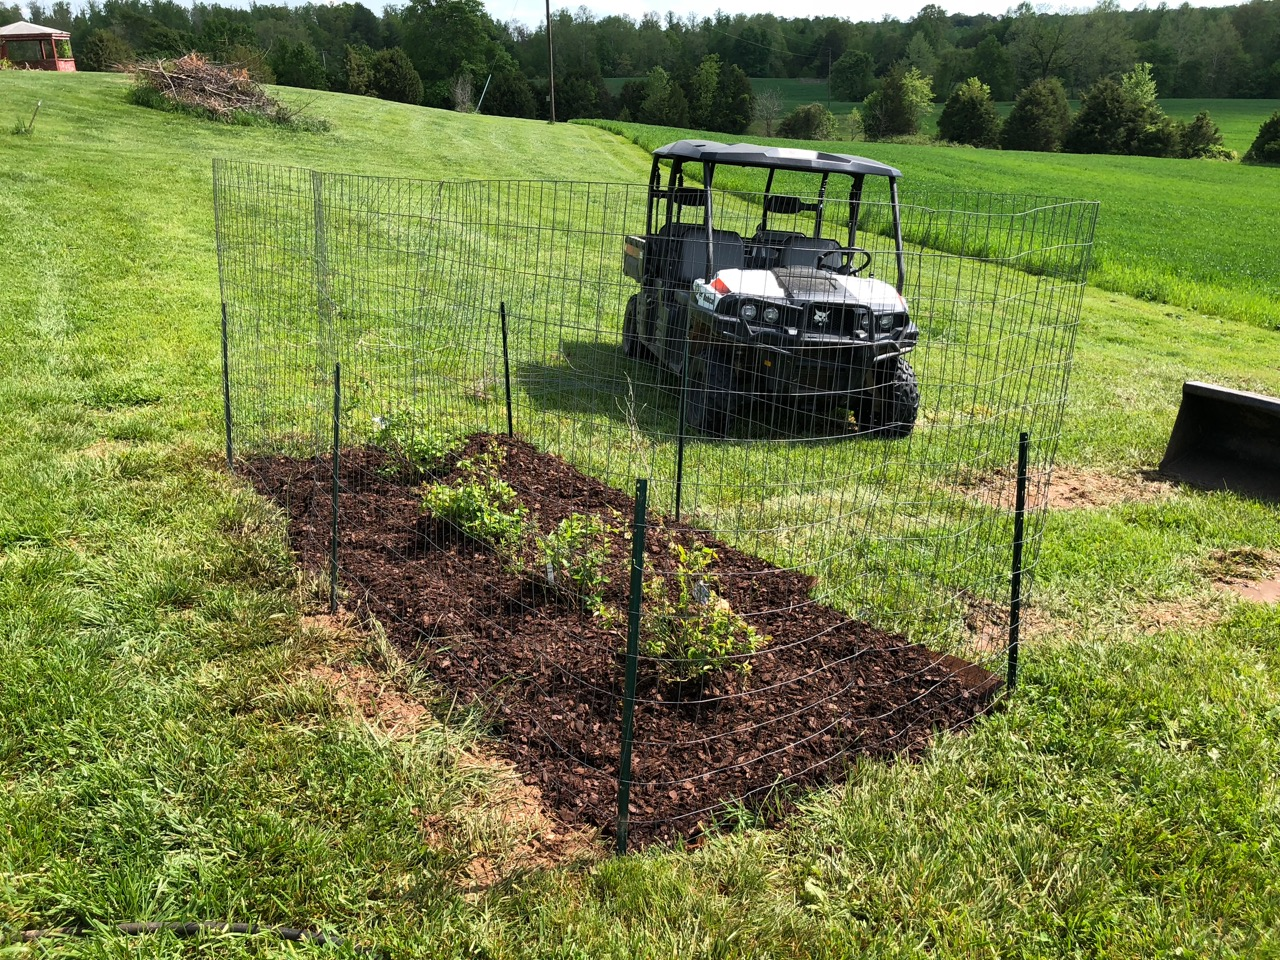 Planted a Row of Blueberry Bushes | Springfield Farm